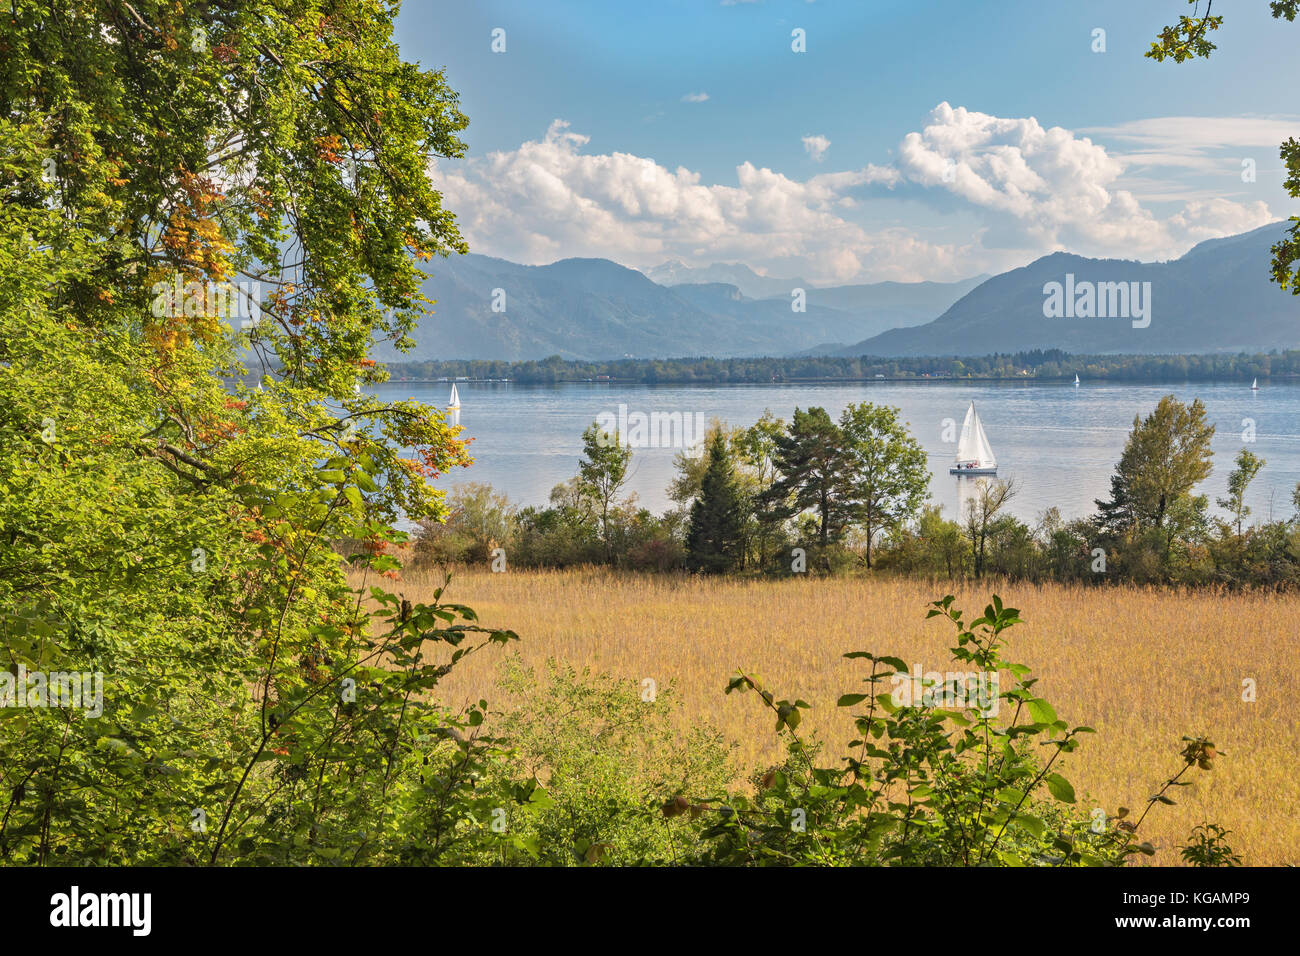 View of the Alps from the Herreninsel in the Chiemsee - Stock Image